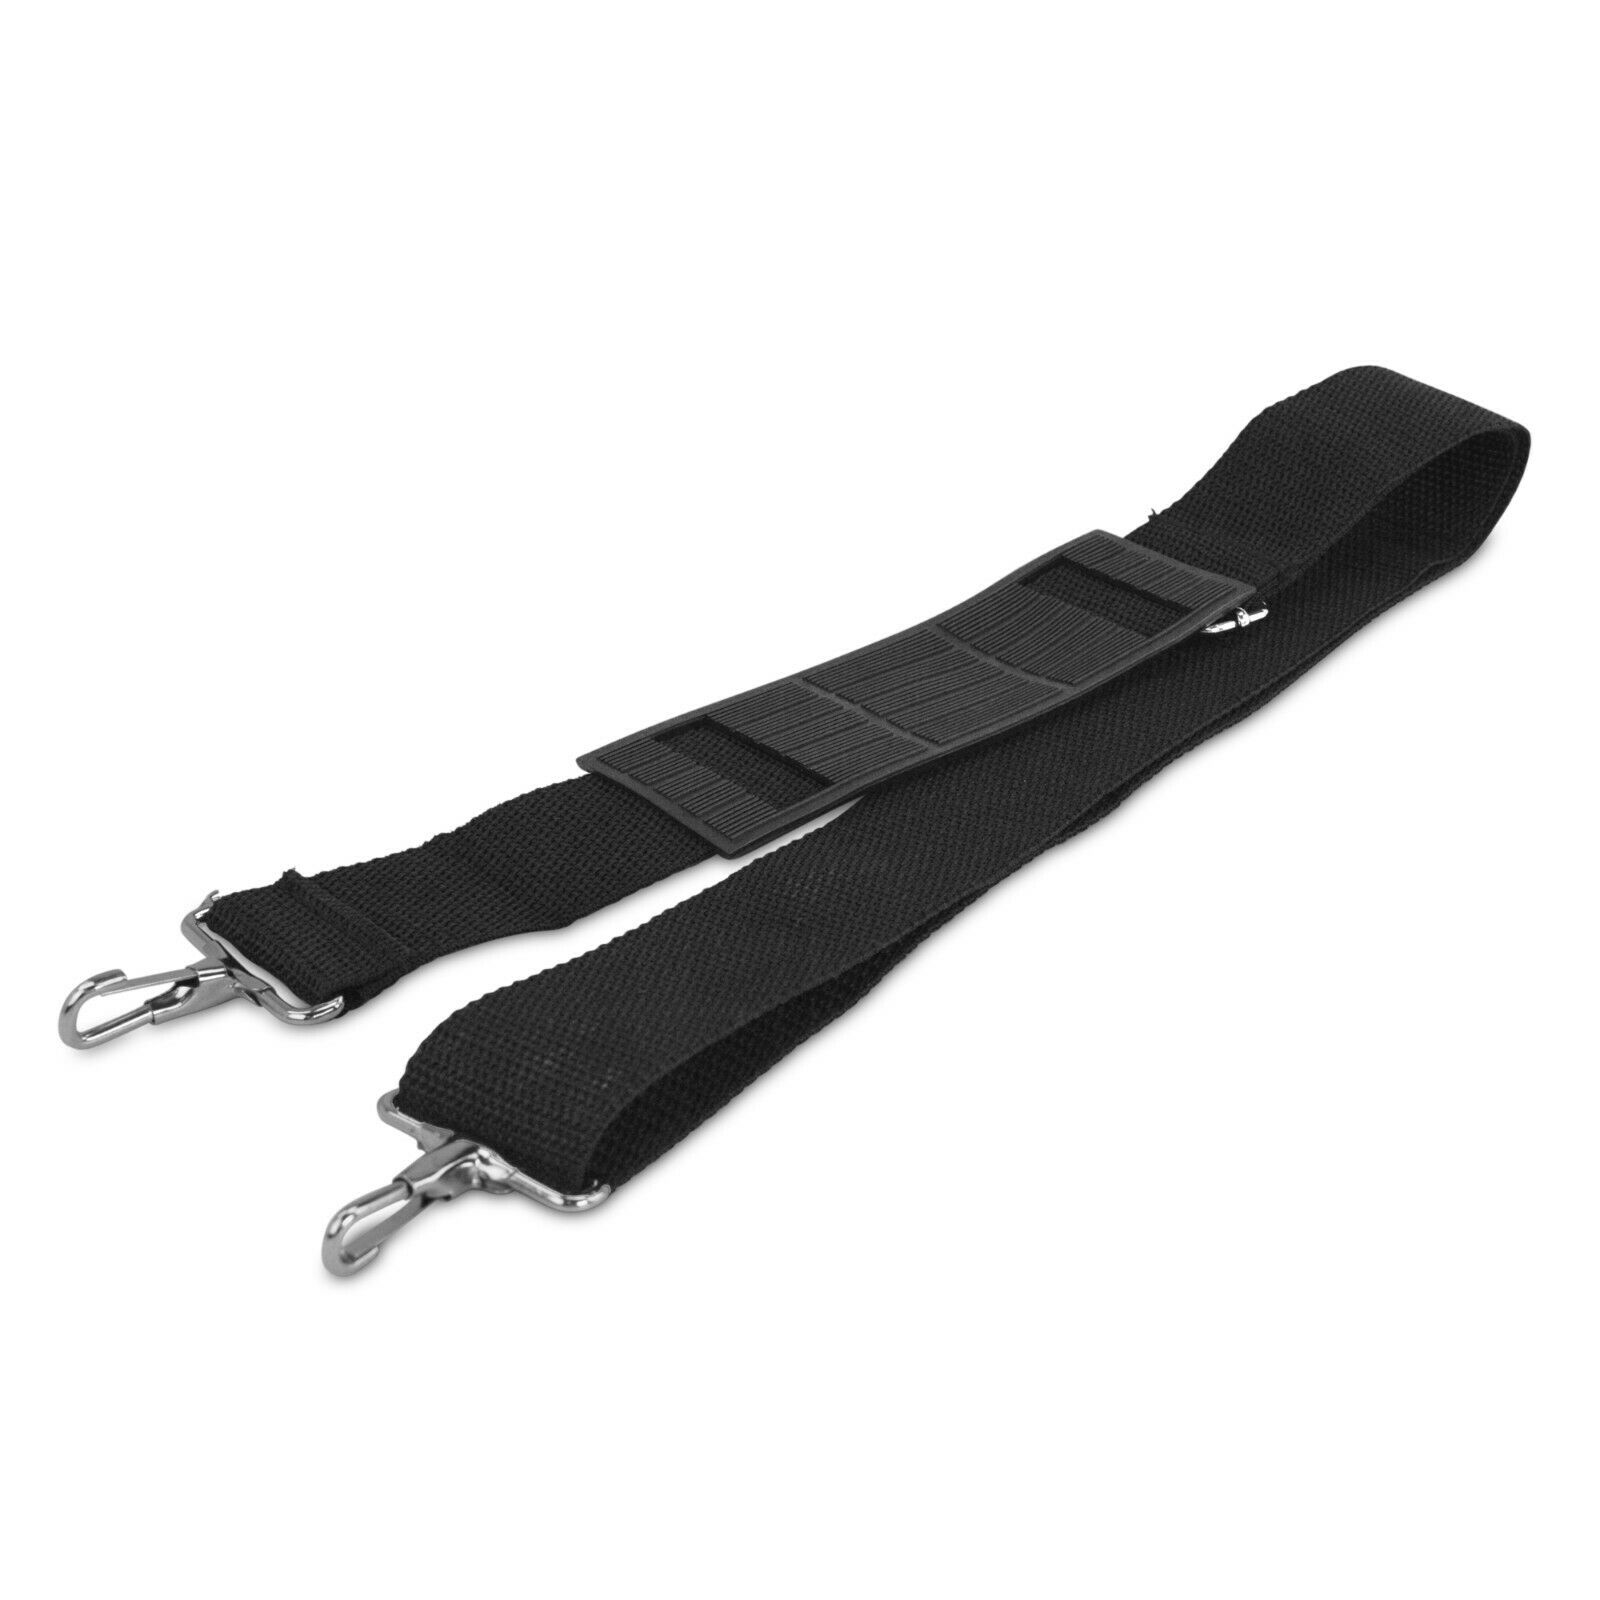 DALIX Metal Duffle Bag Strap Replacement Black Color Luggage Accessories